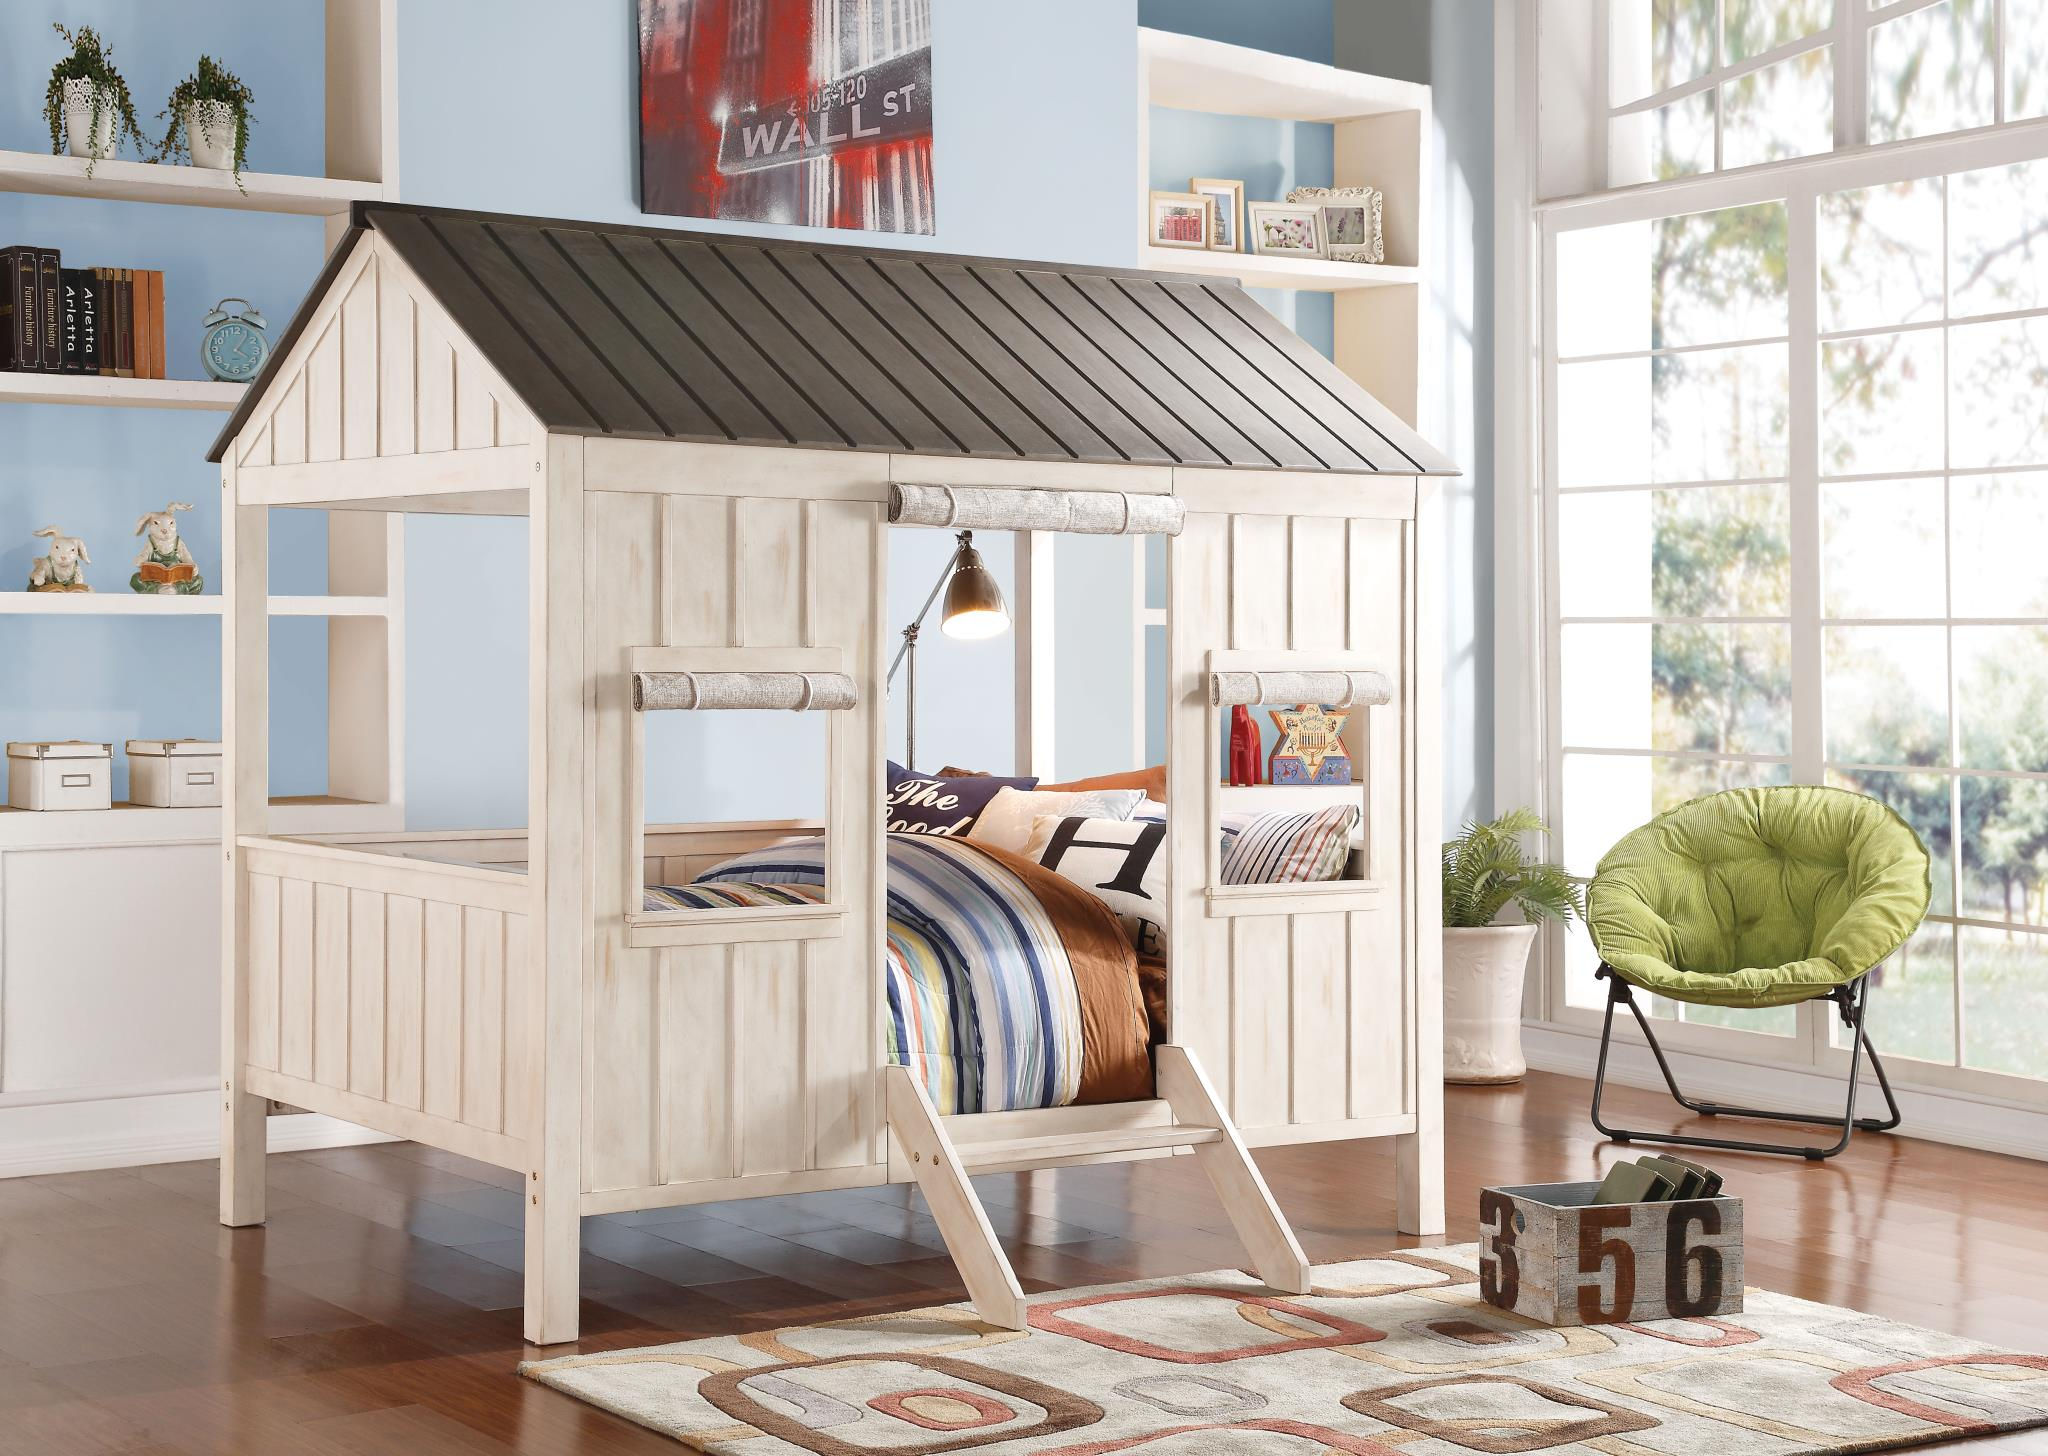 Washed Gray & Weathered White Cottage Themed Full Bed